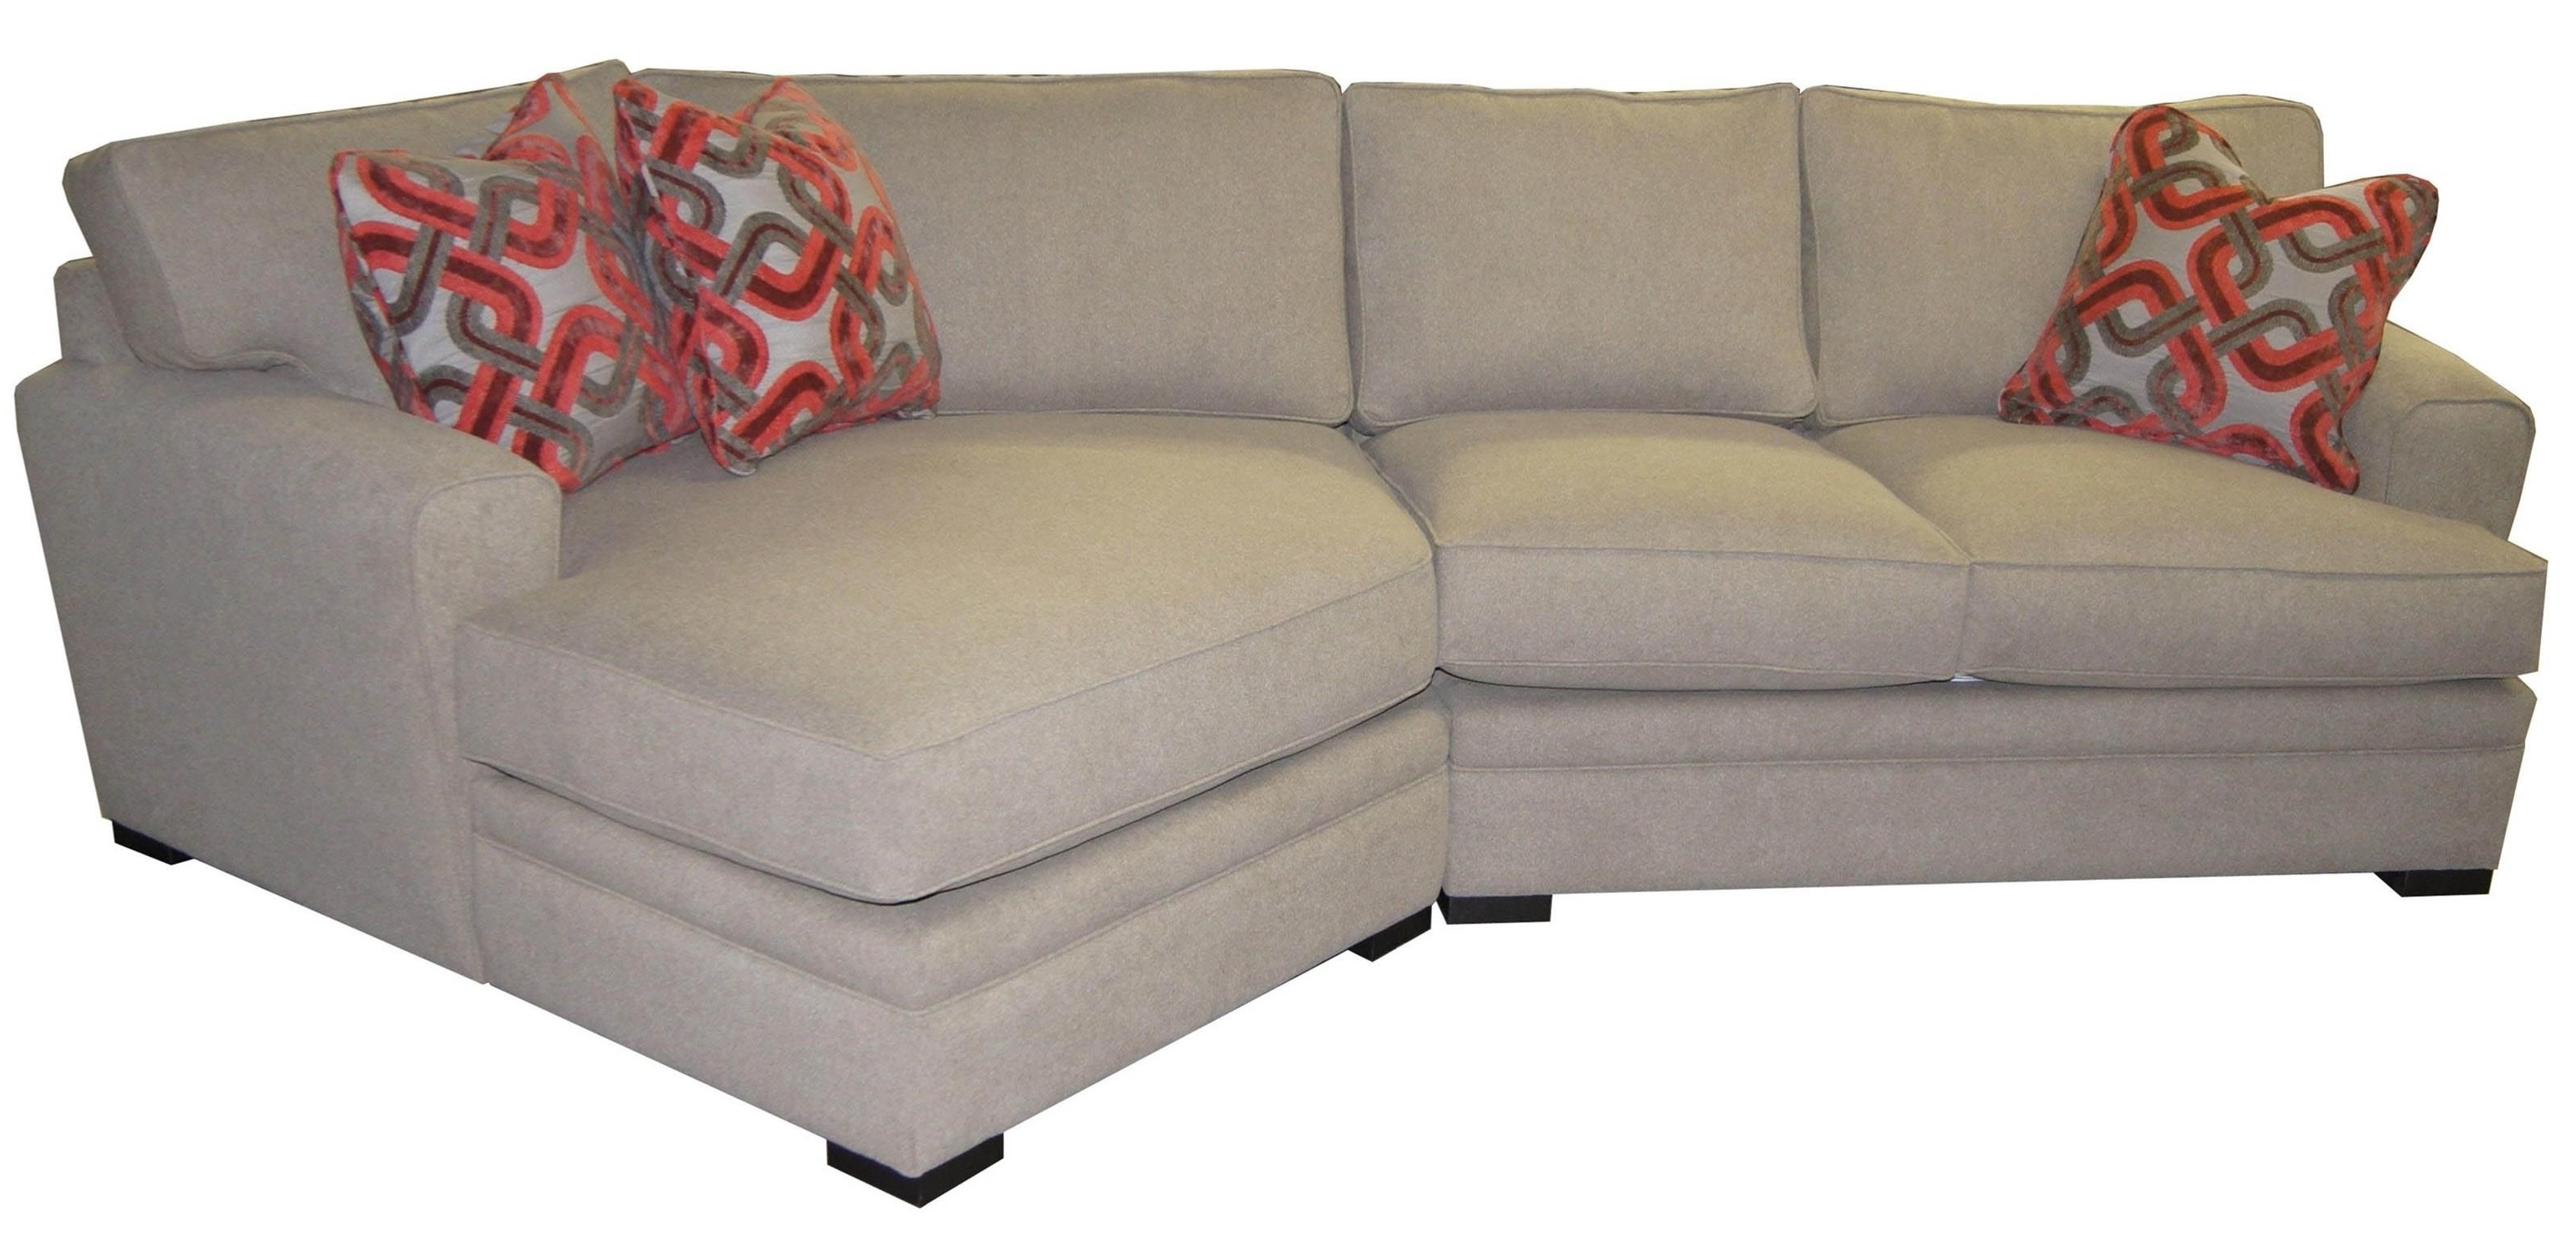 Most Popular Jonathan Louis Aries Casual Sectional Sofa With Rolled Arms – John Inside Pittsburgh Sectional Sofas (View 4 of 20)